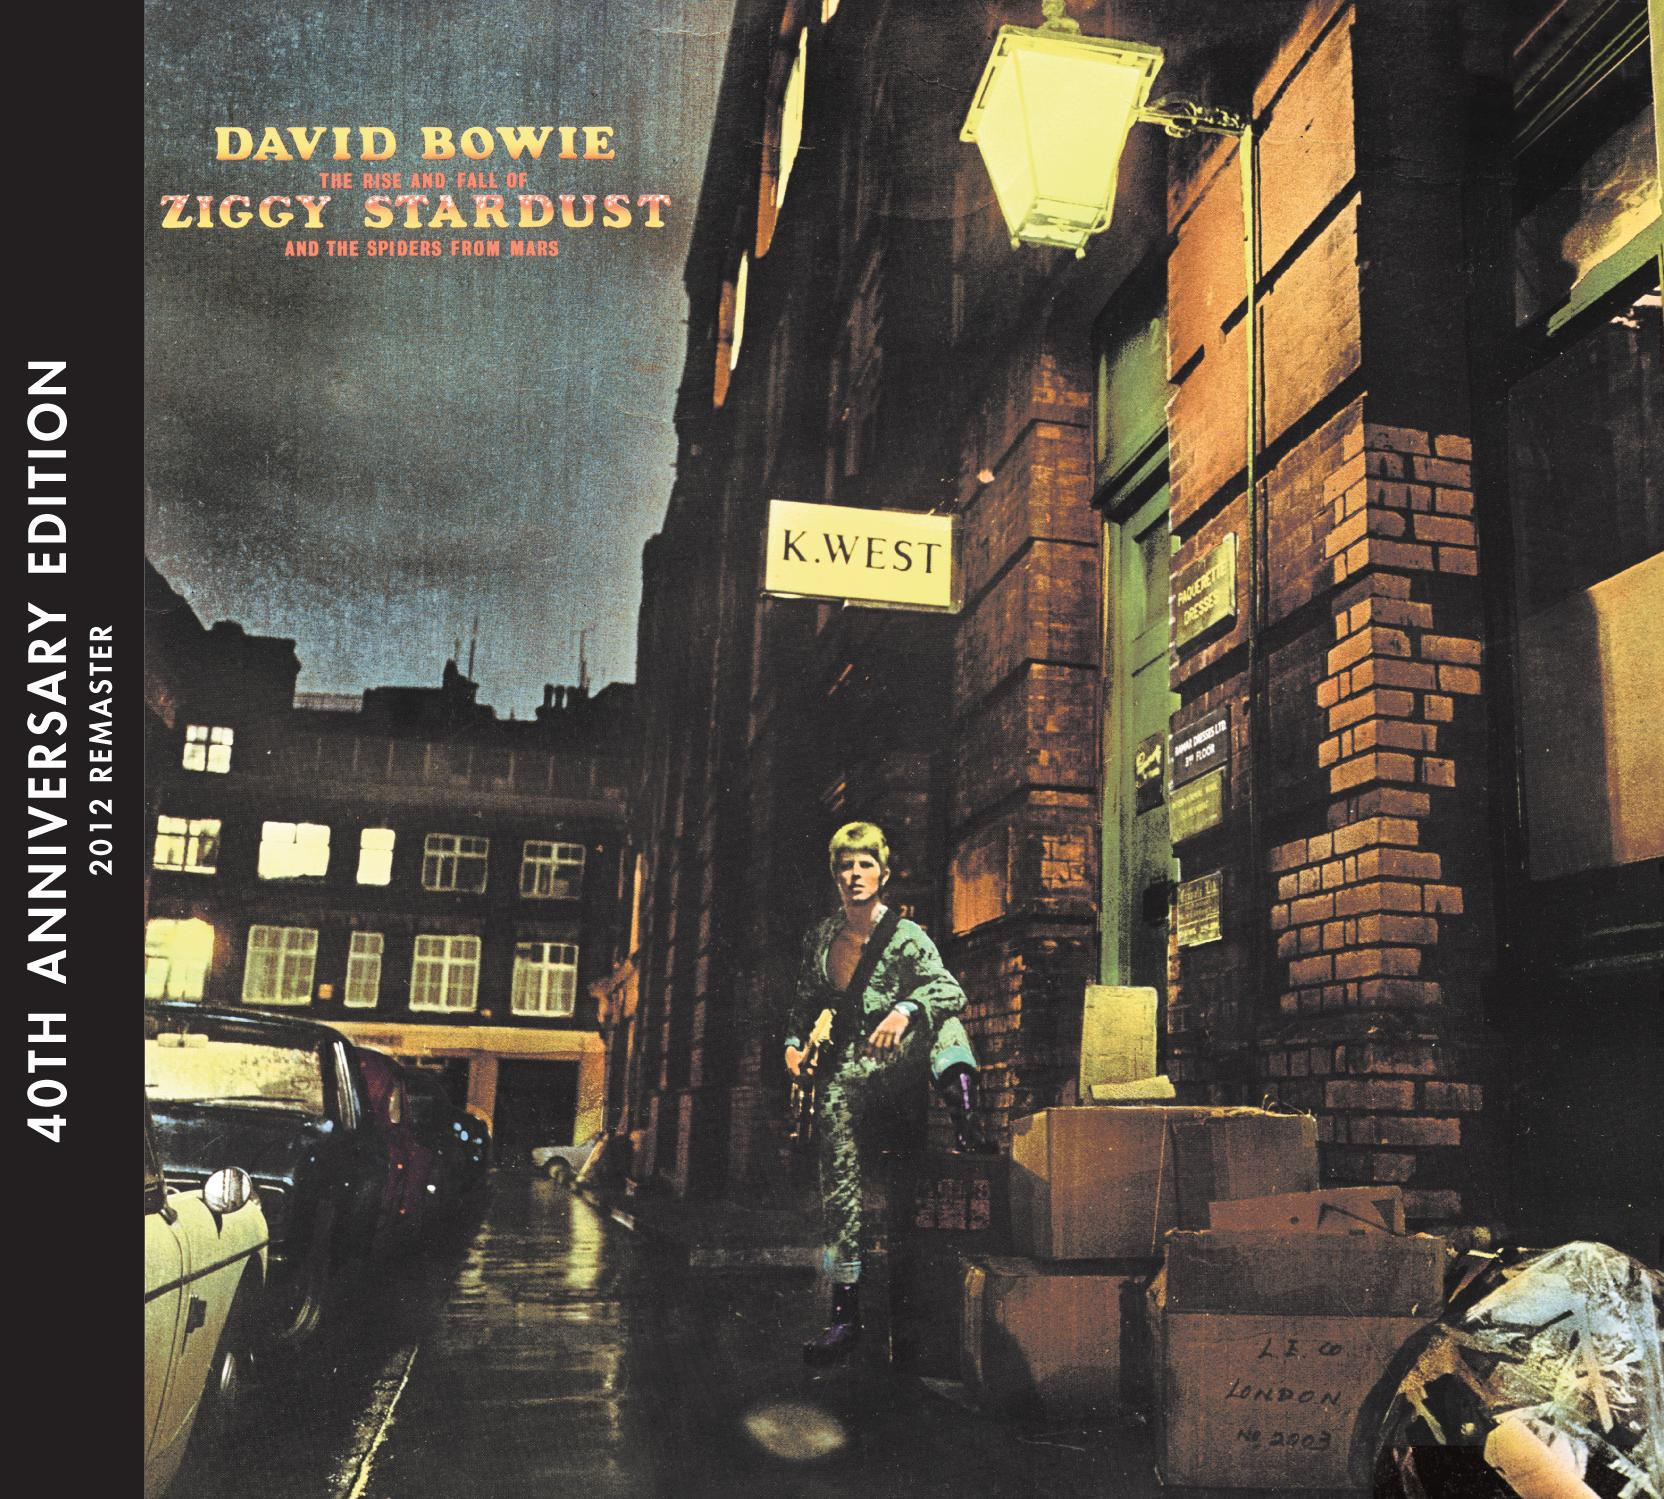 David Bowie Ziggy Stardust 40th Anniversary Packshot Win the 40th Annniversary Edition of Ziggy Stardust on CD